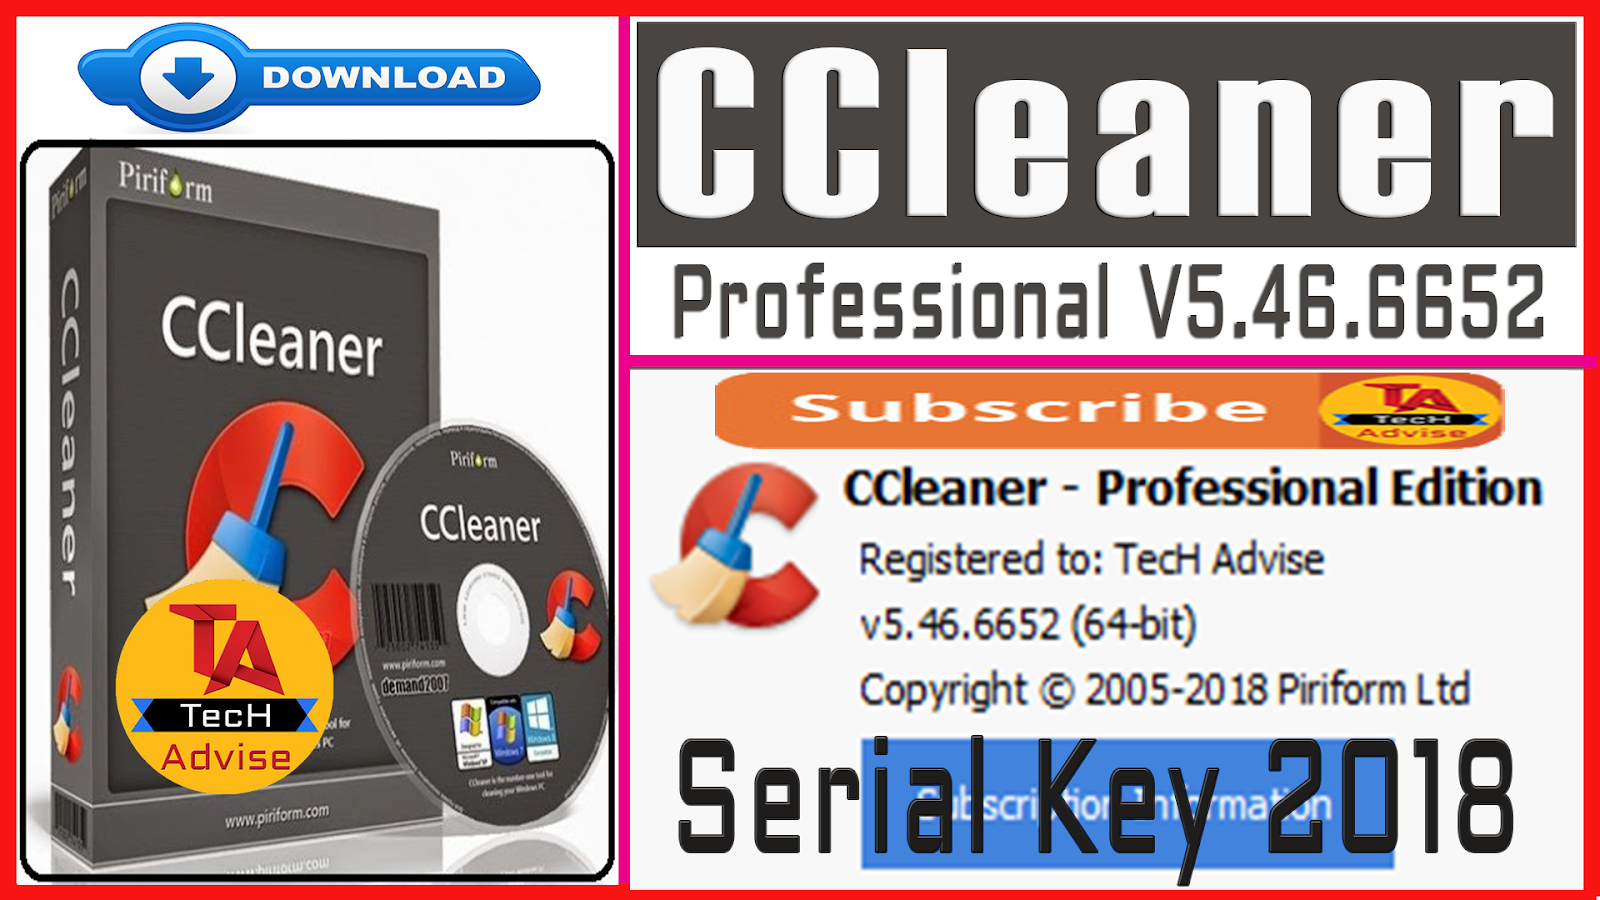 ccleaner professional serial key crack